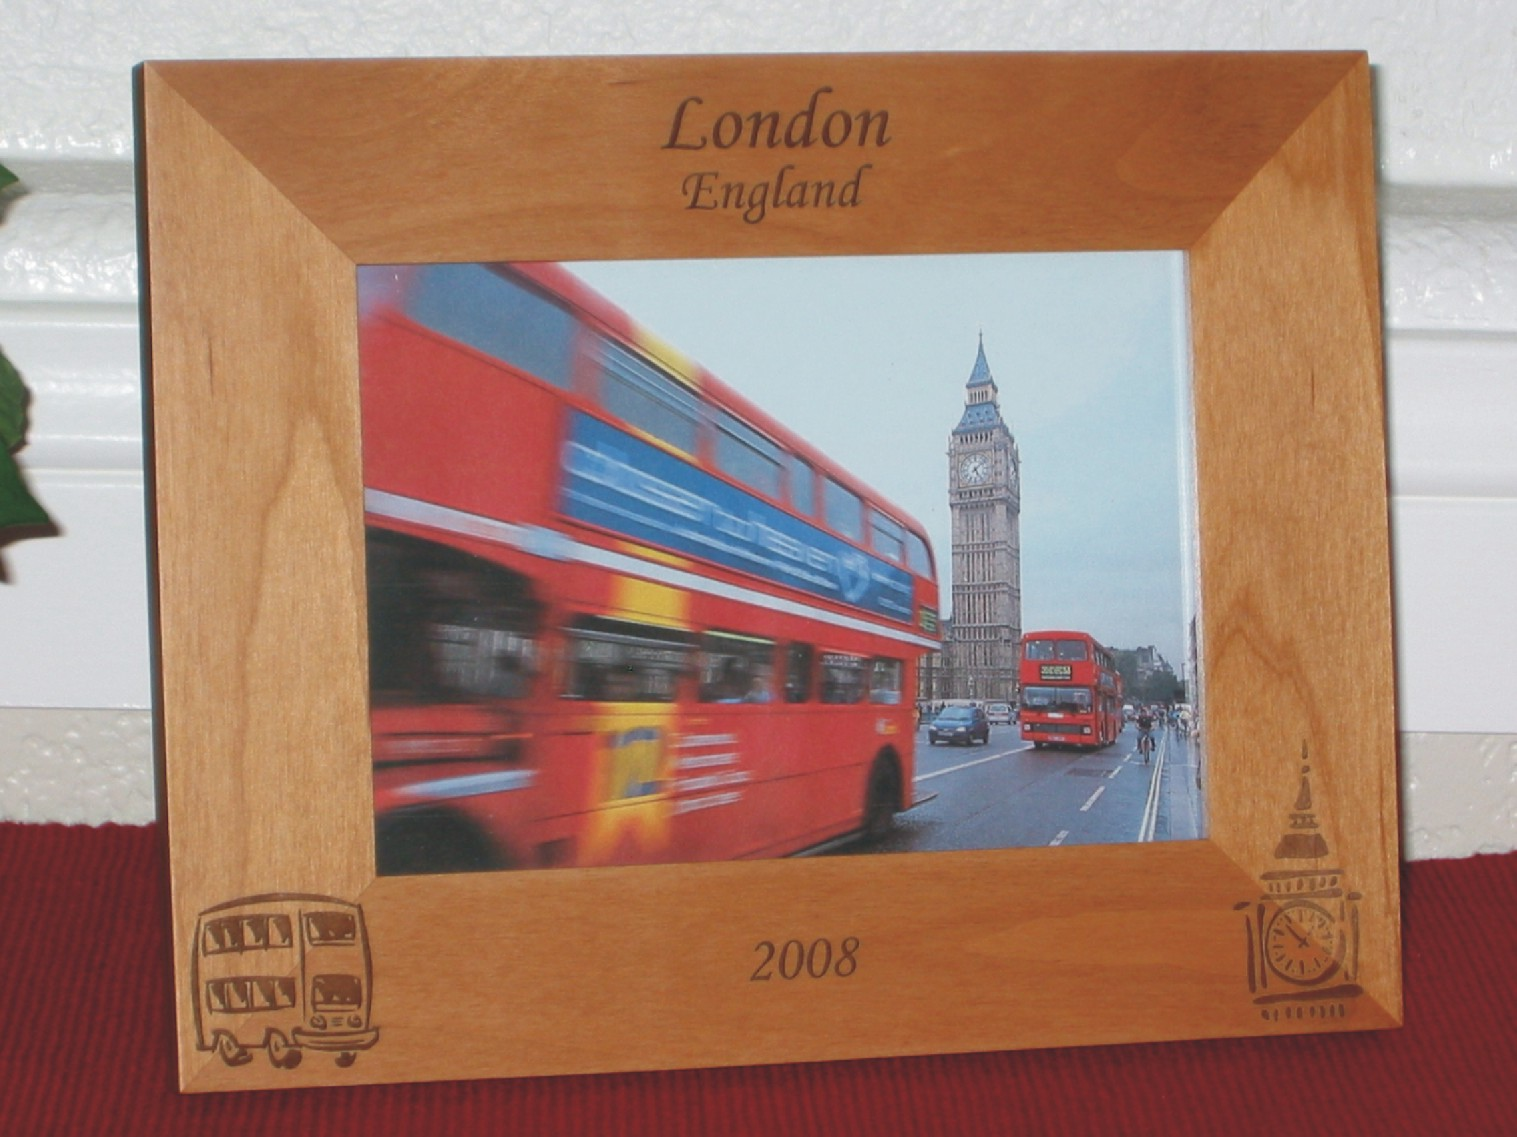 London England Picture Frame - Personalized Frame - Laser Engraved ...